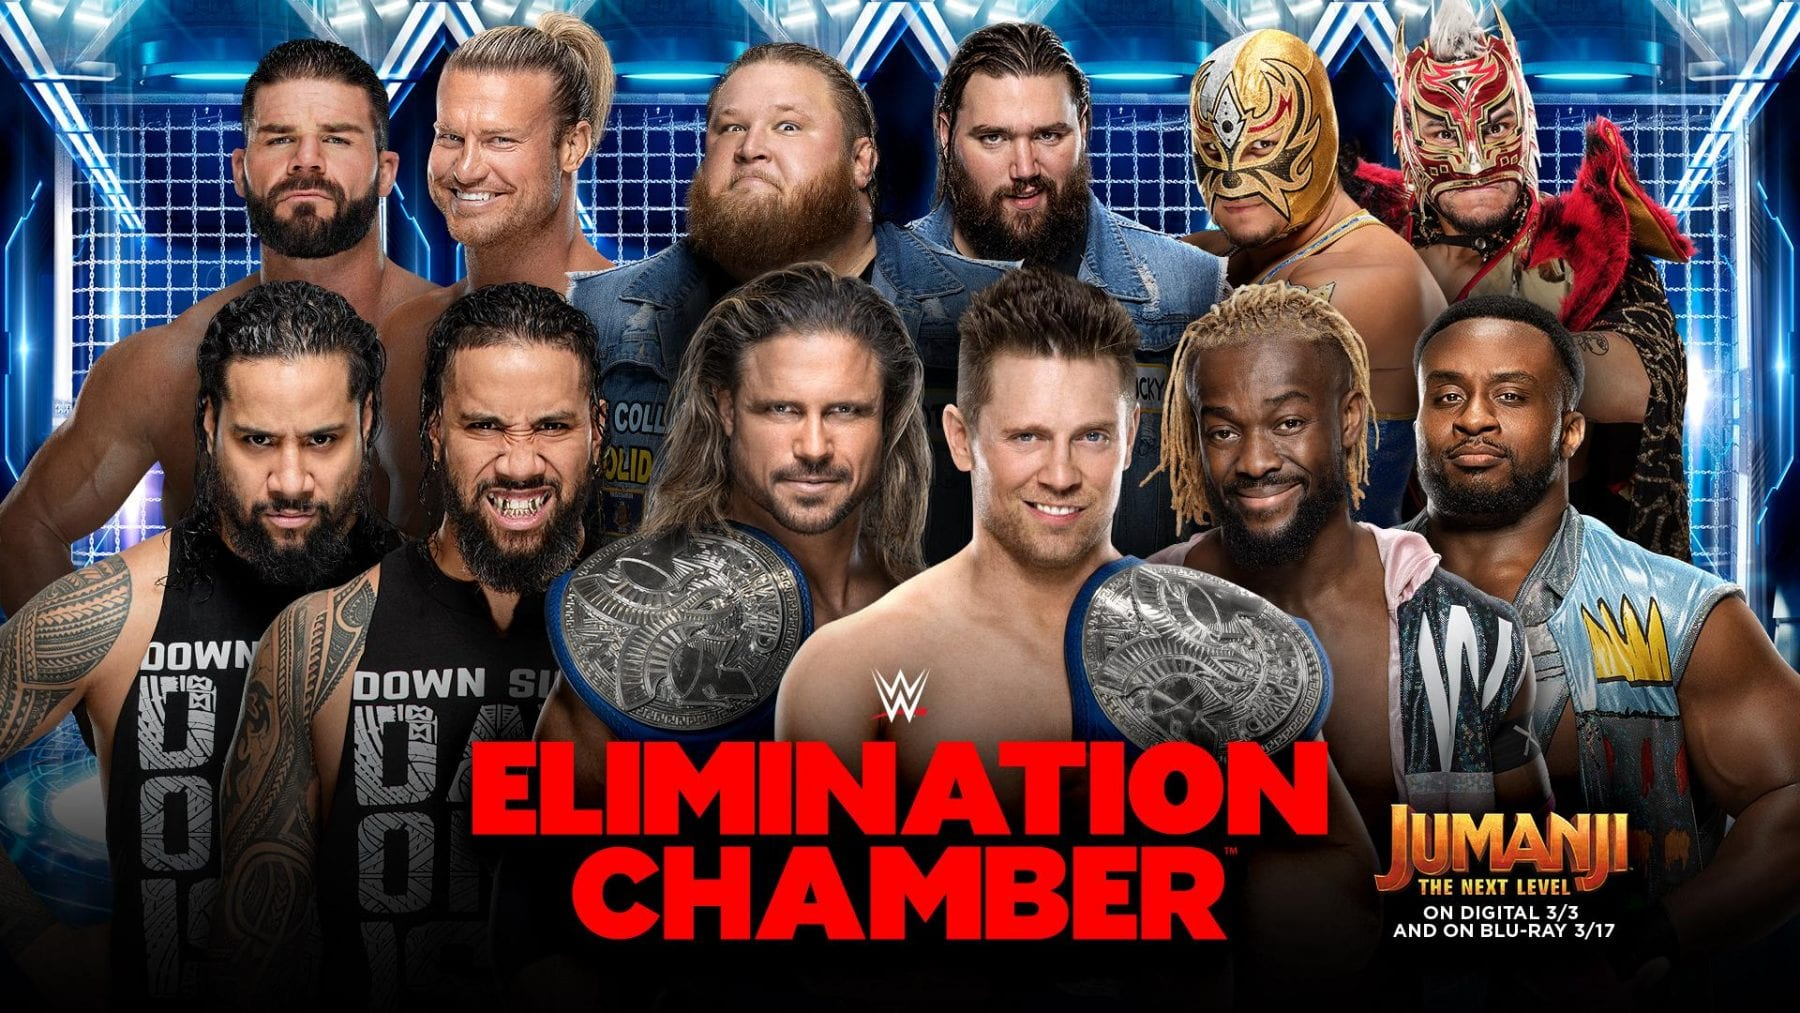 Elimination Chamber Match: The Miz and John Morrison vs. The New Day vs. The Usos vs. Heavy Machinery vs. Lucha House Party vs. Dolph Ziggler and Robert Roode